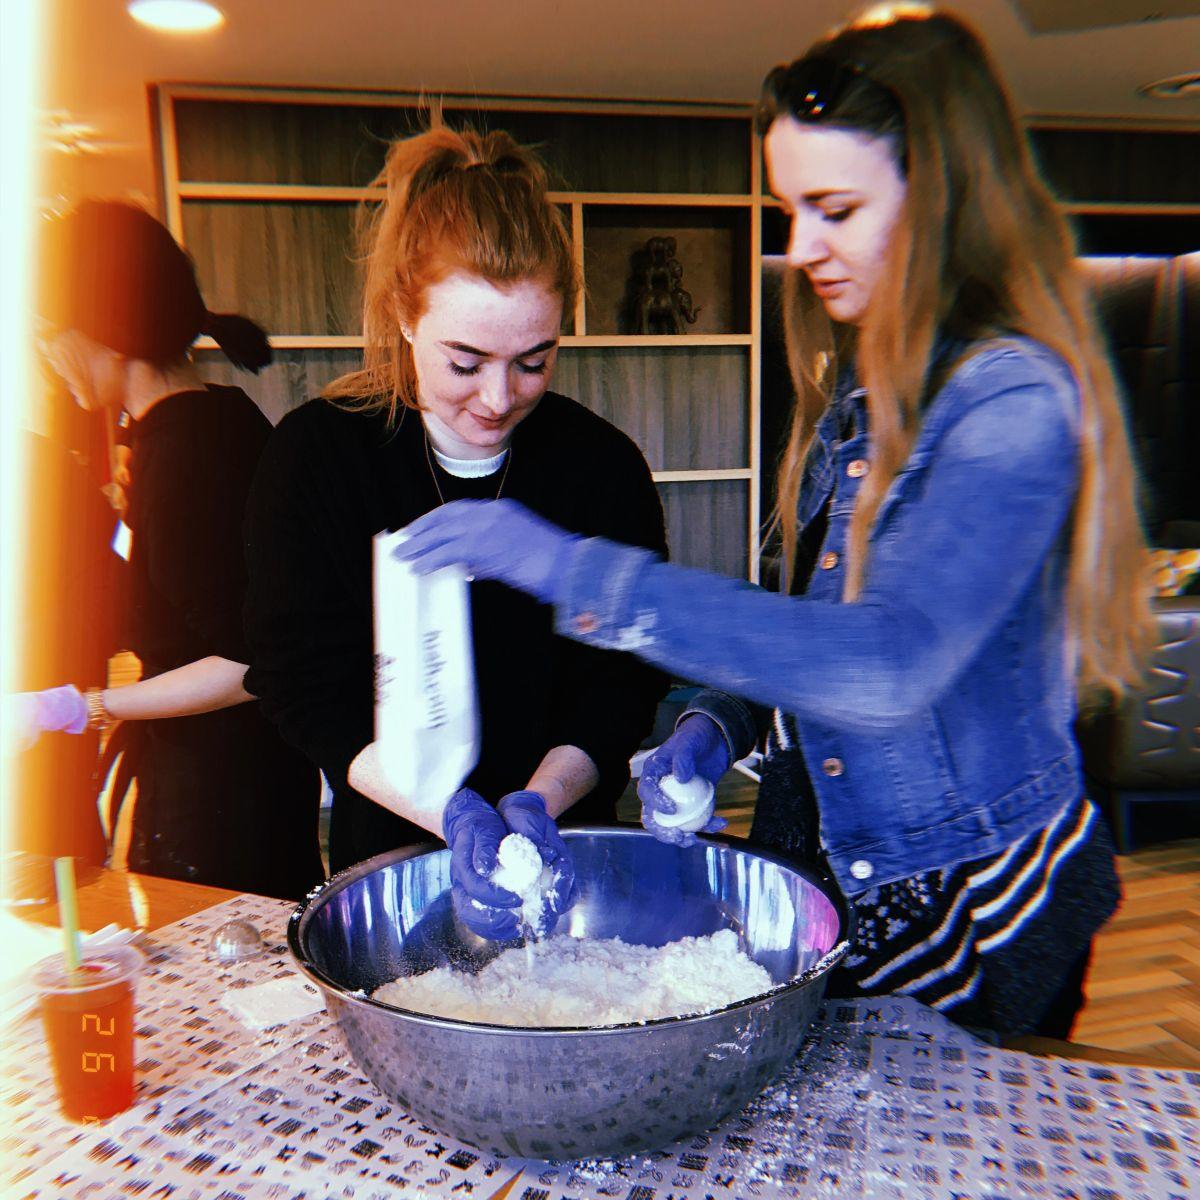 You guys made so many bath bombs we could open our own @LushLtdstore! More events like this coming soon! #event #VitaStudent #exclusive #student